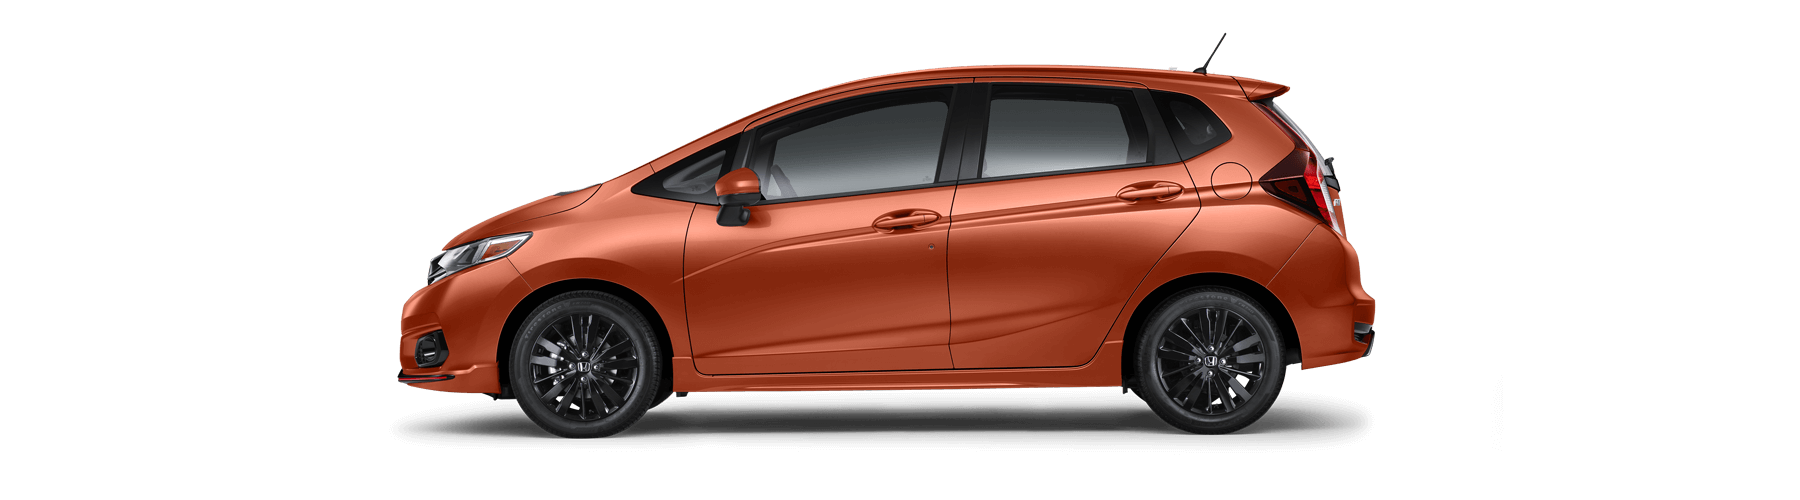 2019 Honda Fit Side Profile